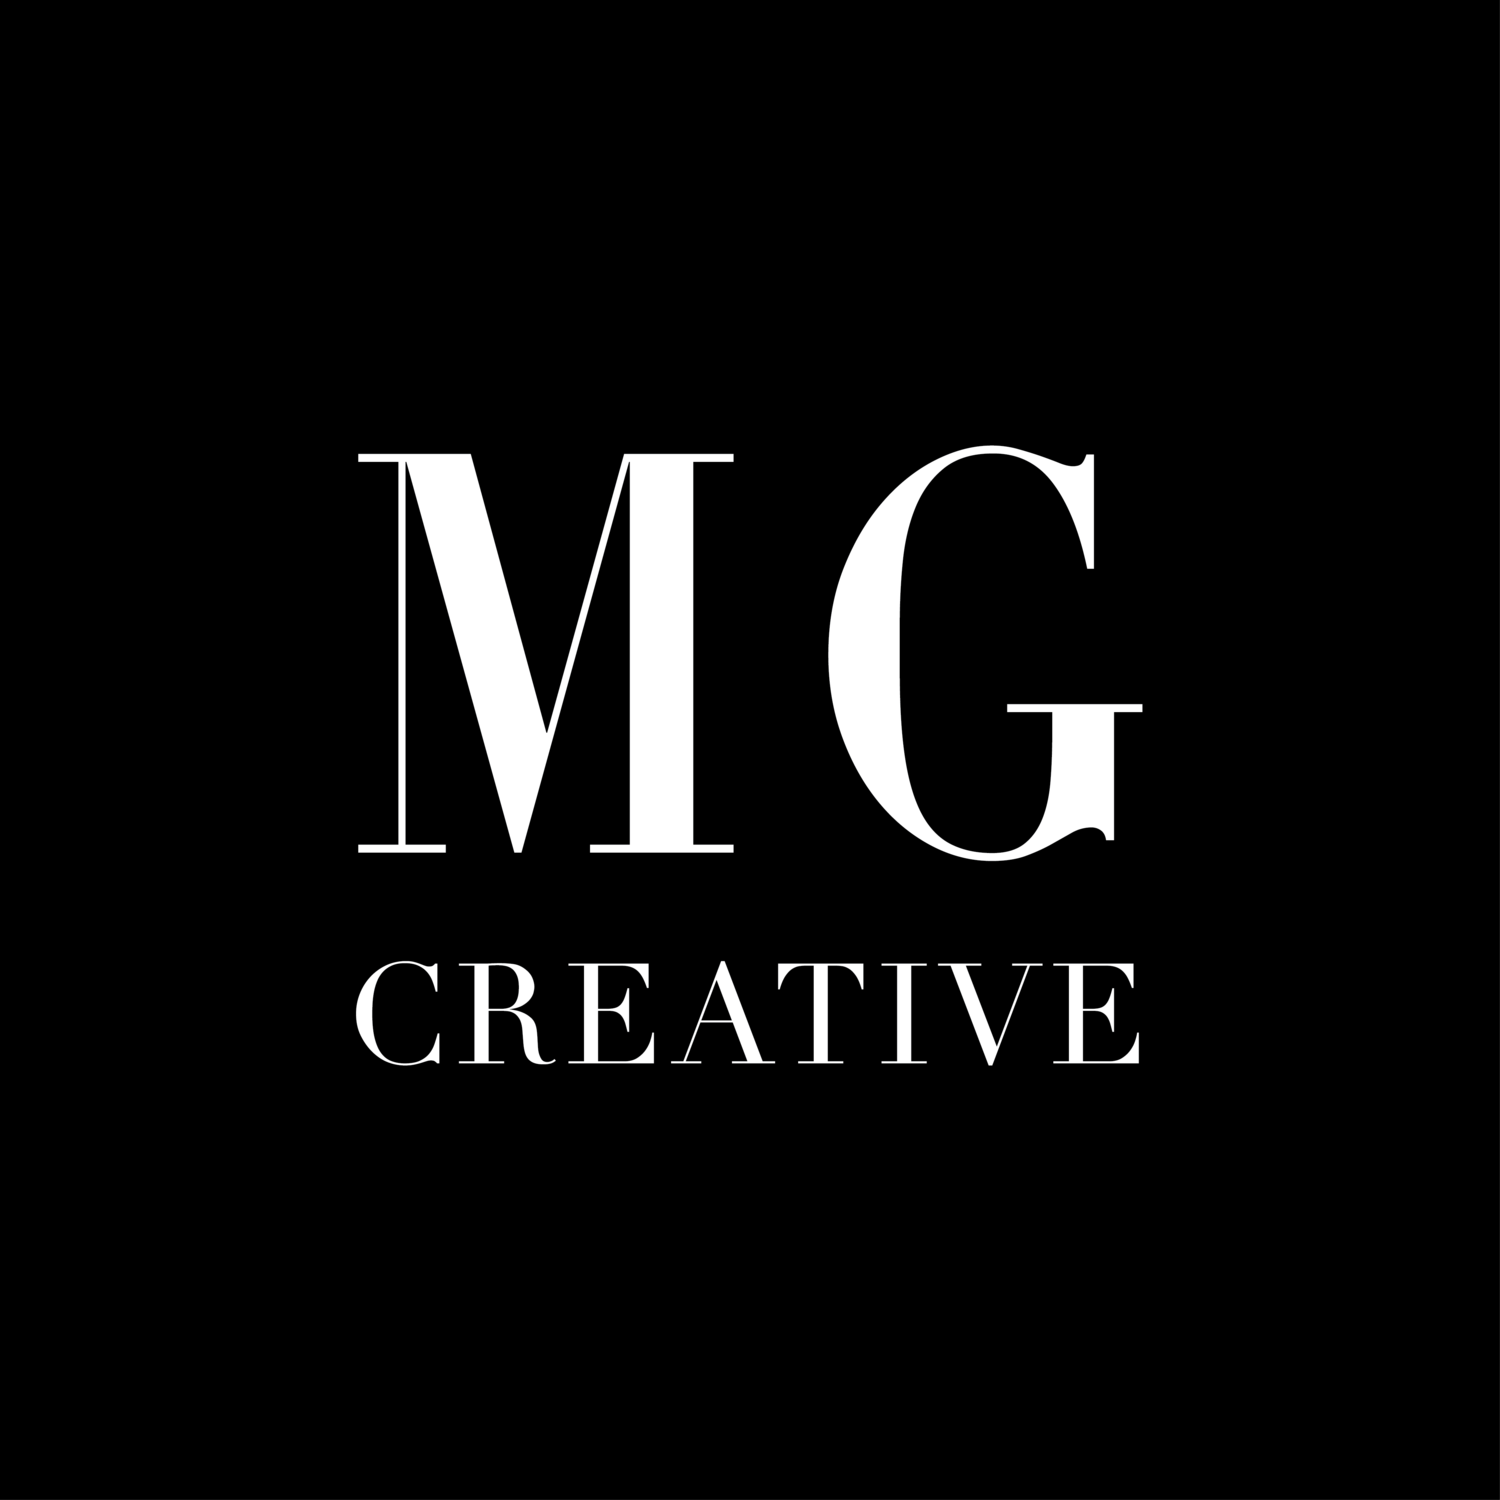 MATTHEW GEORGE CREATIVE